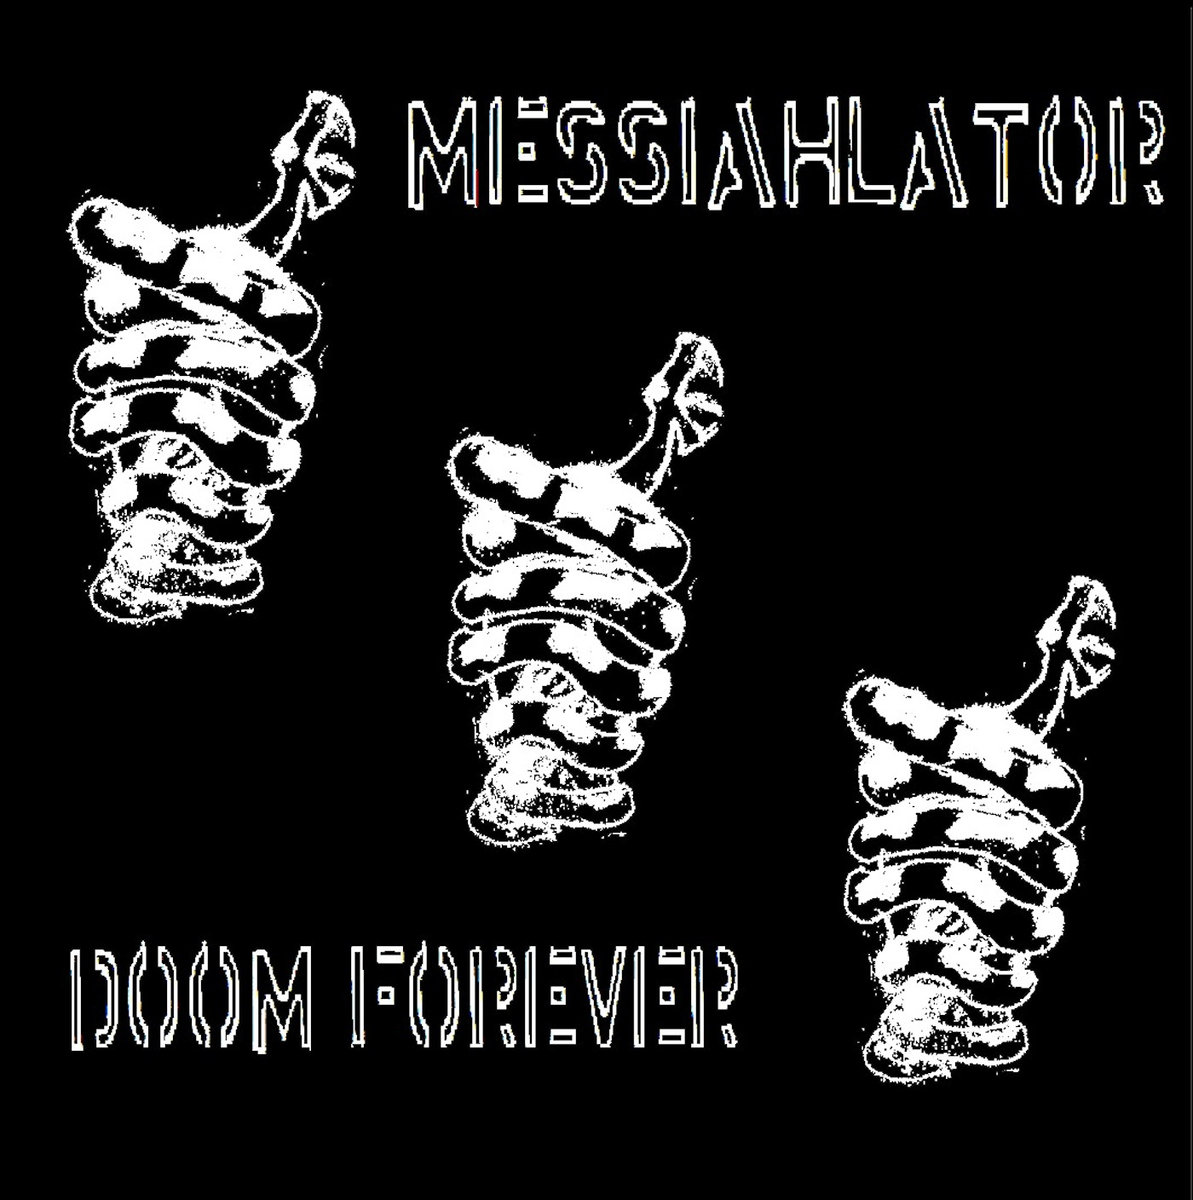 messiahlator